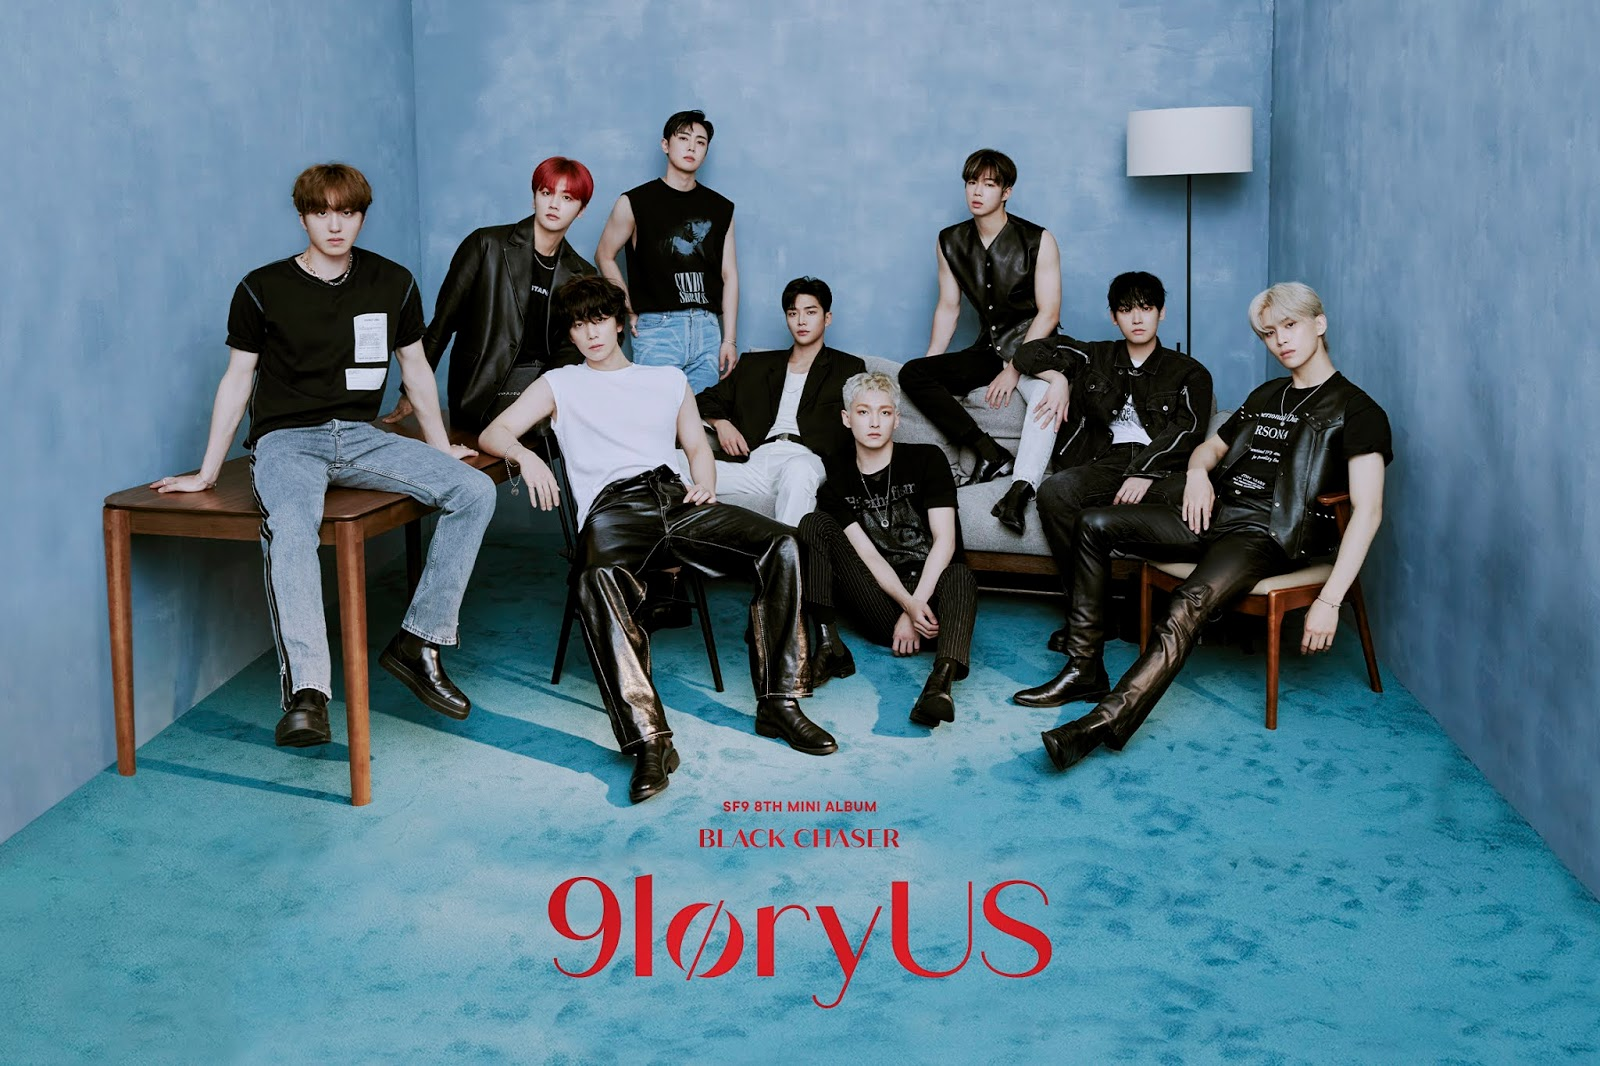 SF9 9loryUS 8th Mini Album